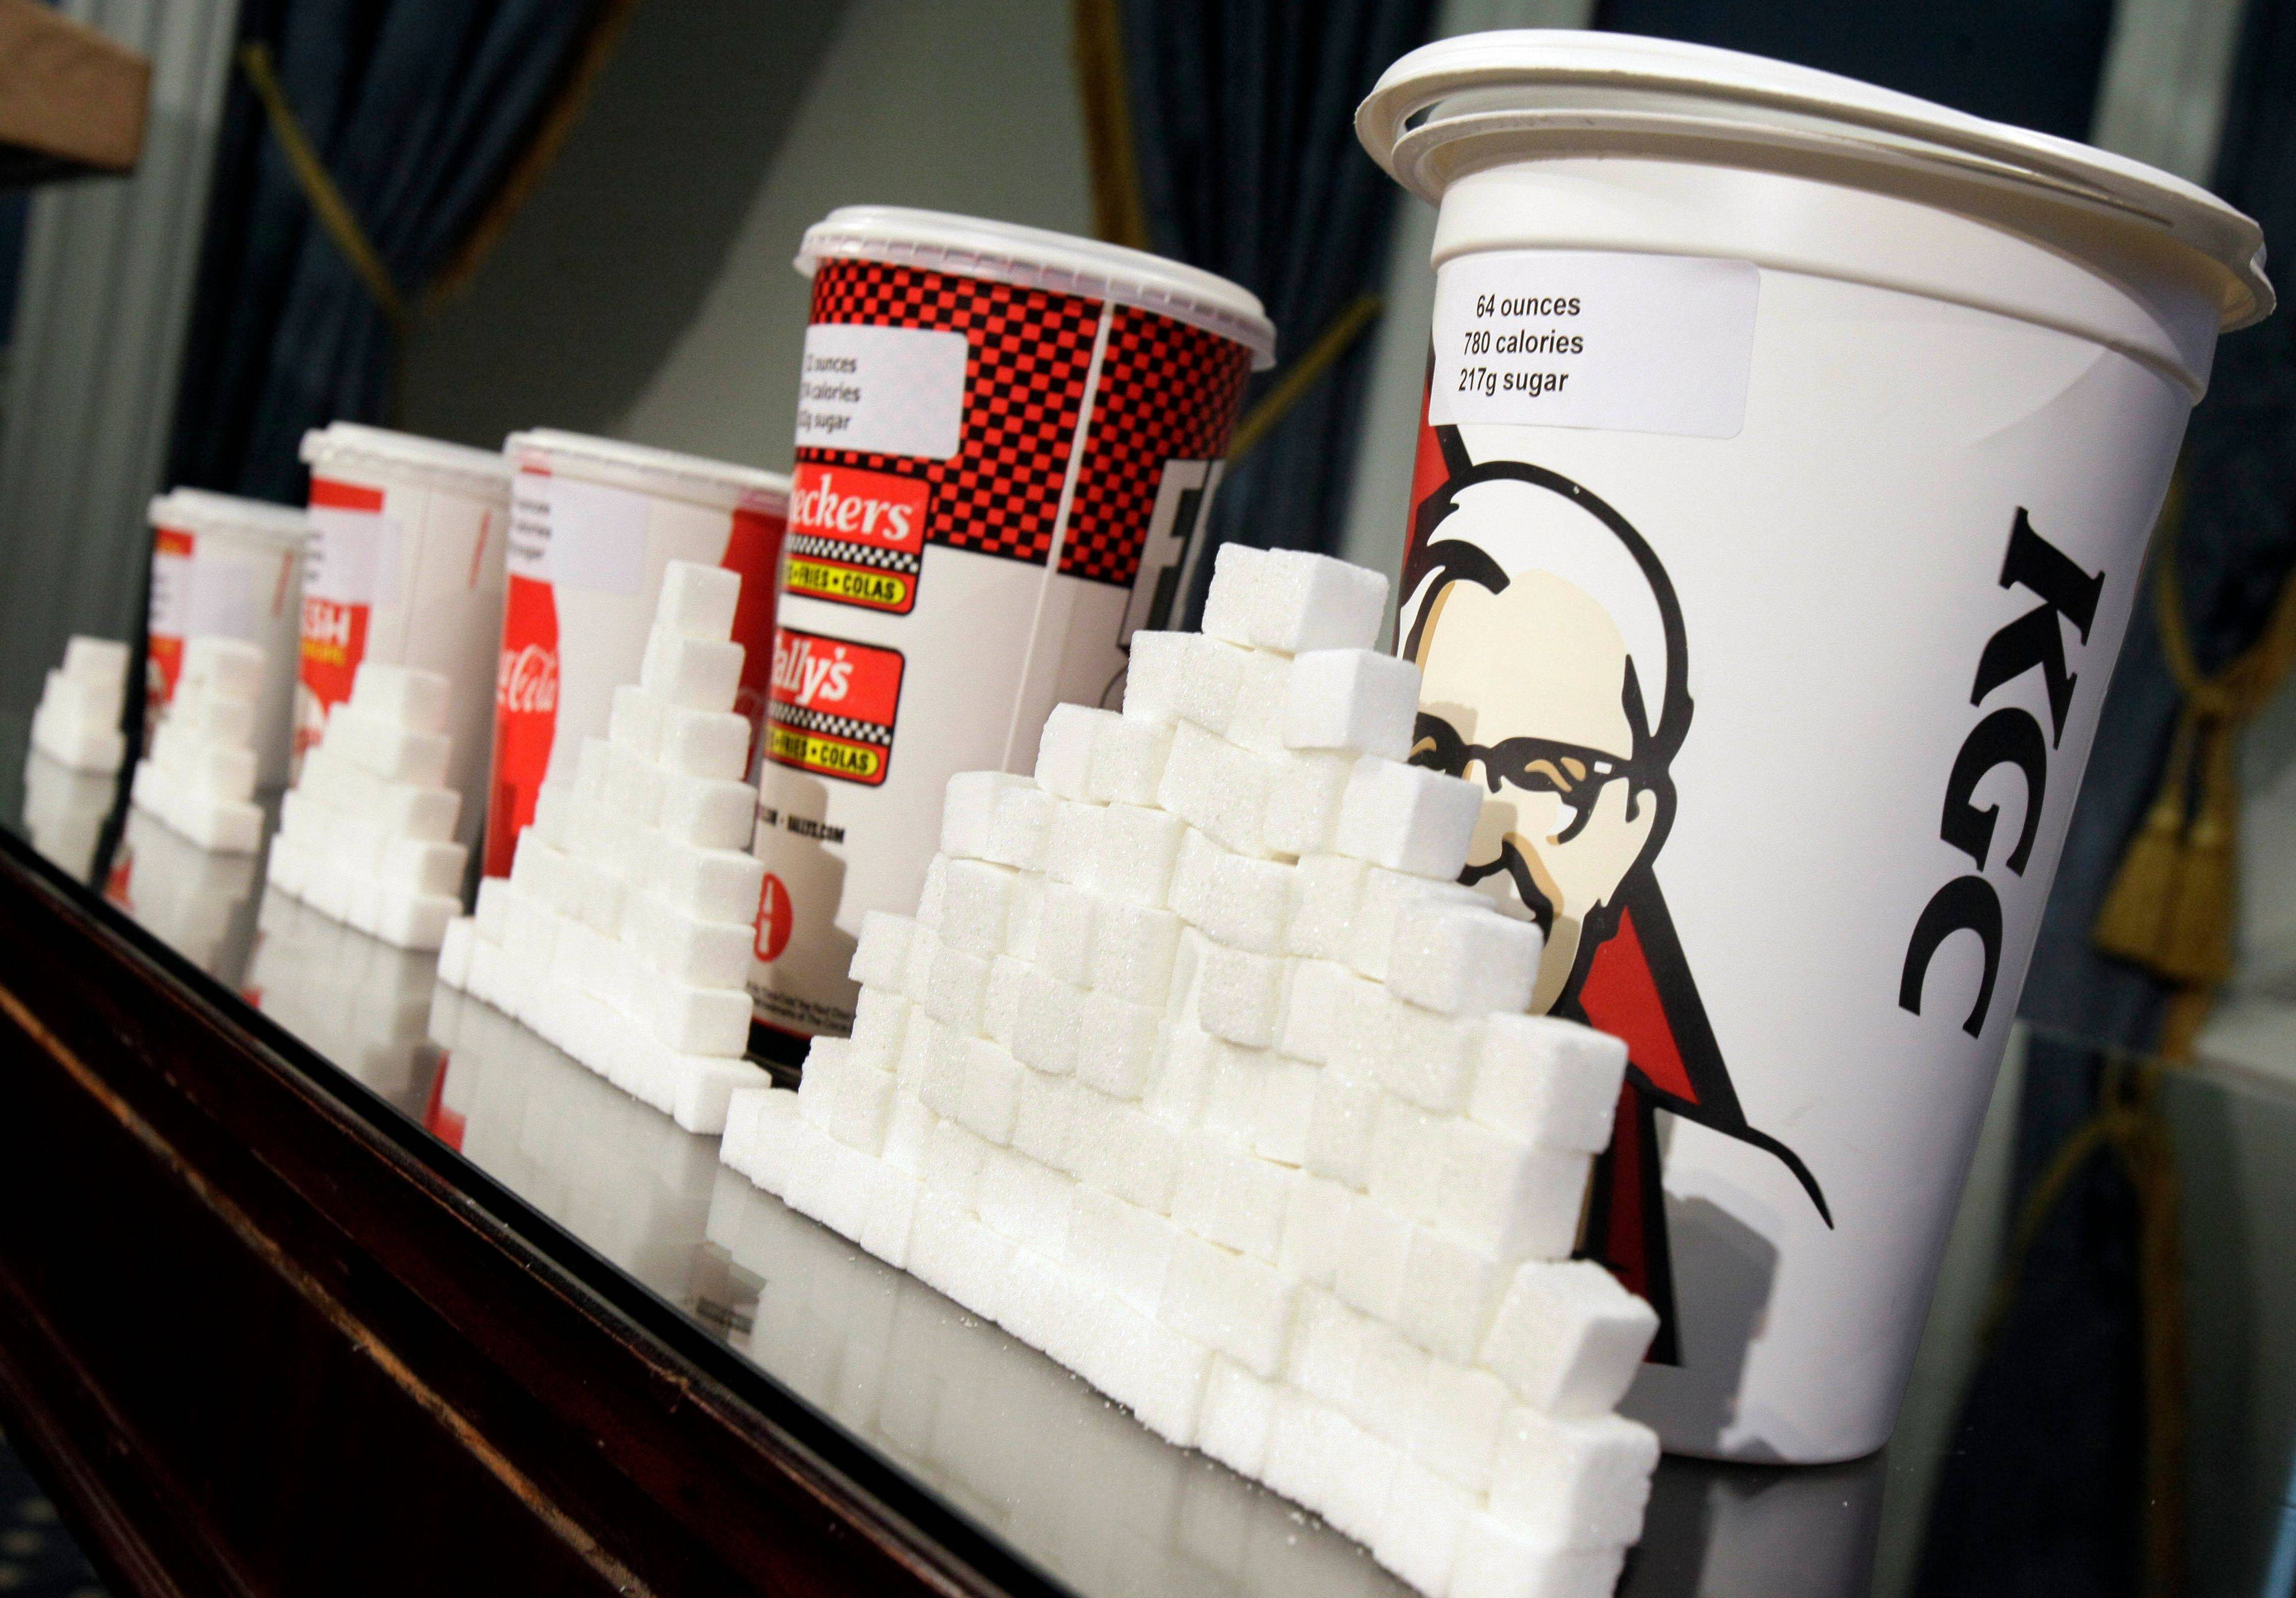 A judge struck down New York City�s groundbreaking limit on the size of sugar-laden drinks Monday shortly before it was set to take effect.